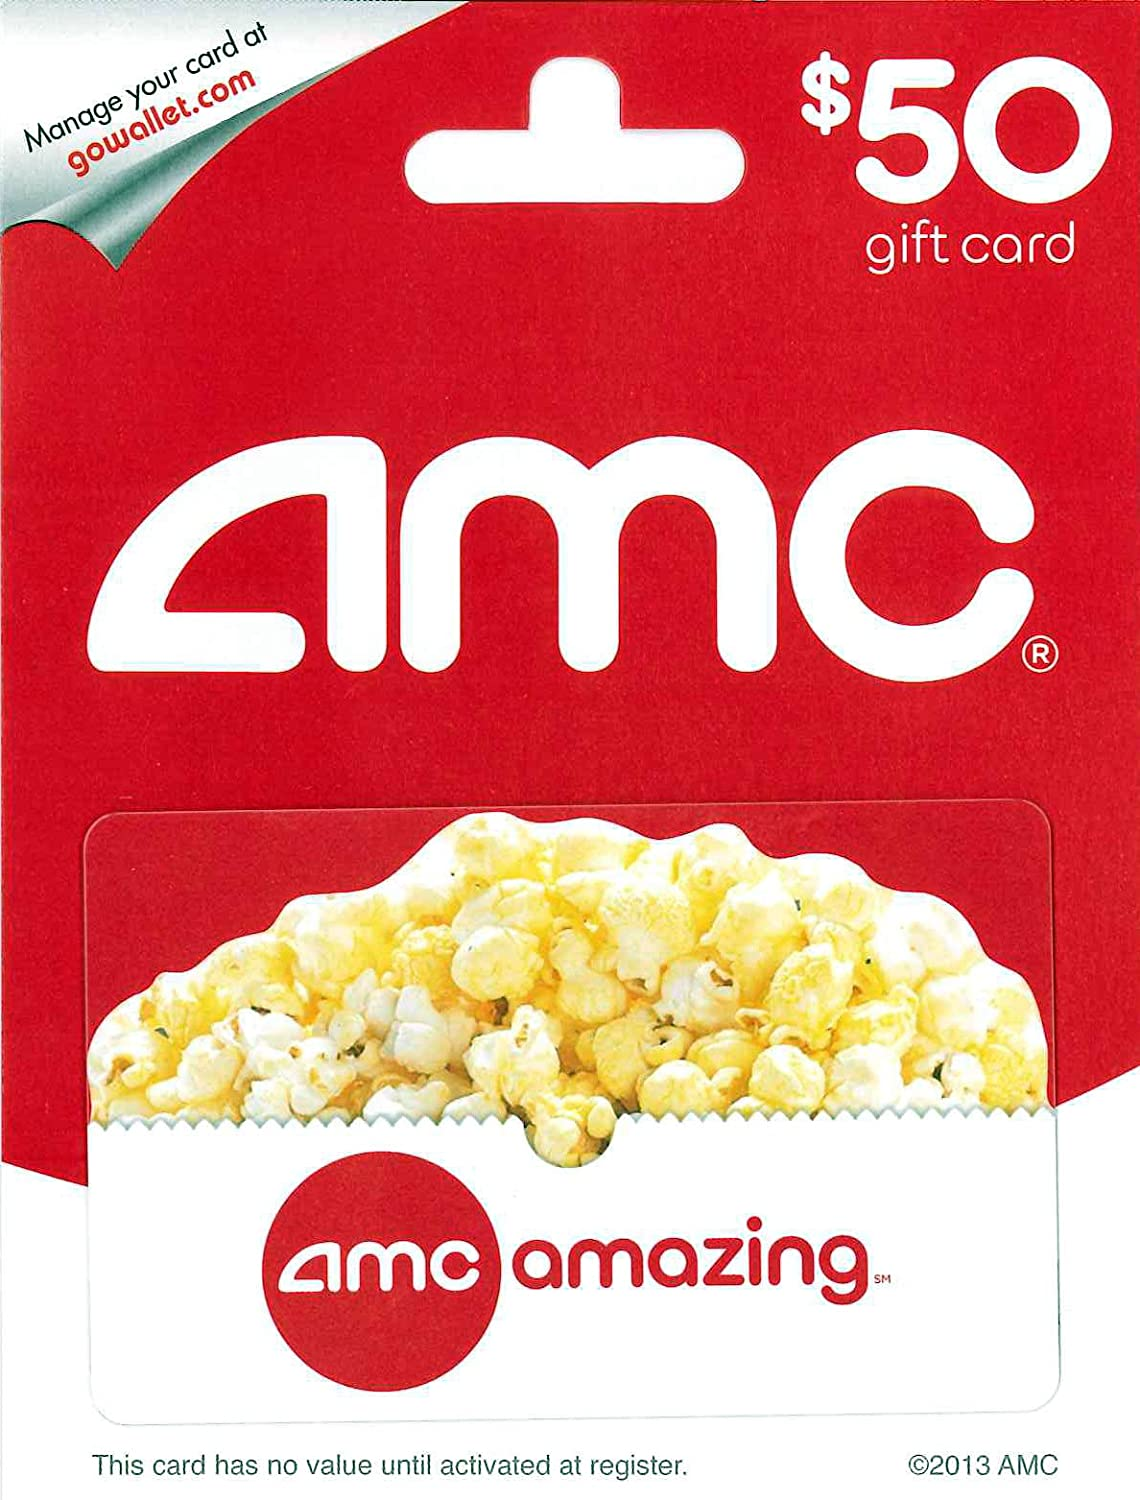 Buy Gift Cards. Corporate Orders. Download the App. Give the Gift of Movie Magic. Share a movie moment with someone, give them an AMC Gift Card this holiday season. Buy Now. Send Gifts Quick. E-Cards. Don't miss a big day ever again. Have AMC eGift cards instantly delivered to any inbox and don't worry about shipping and handling fees.